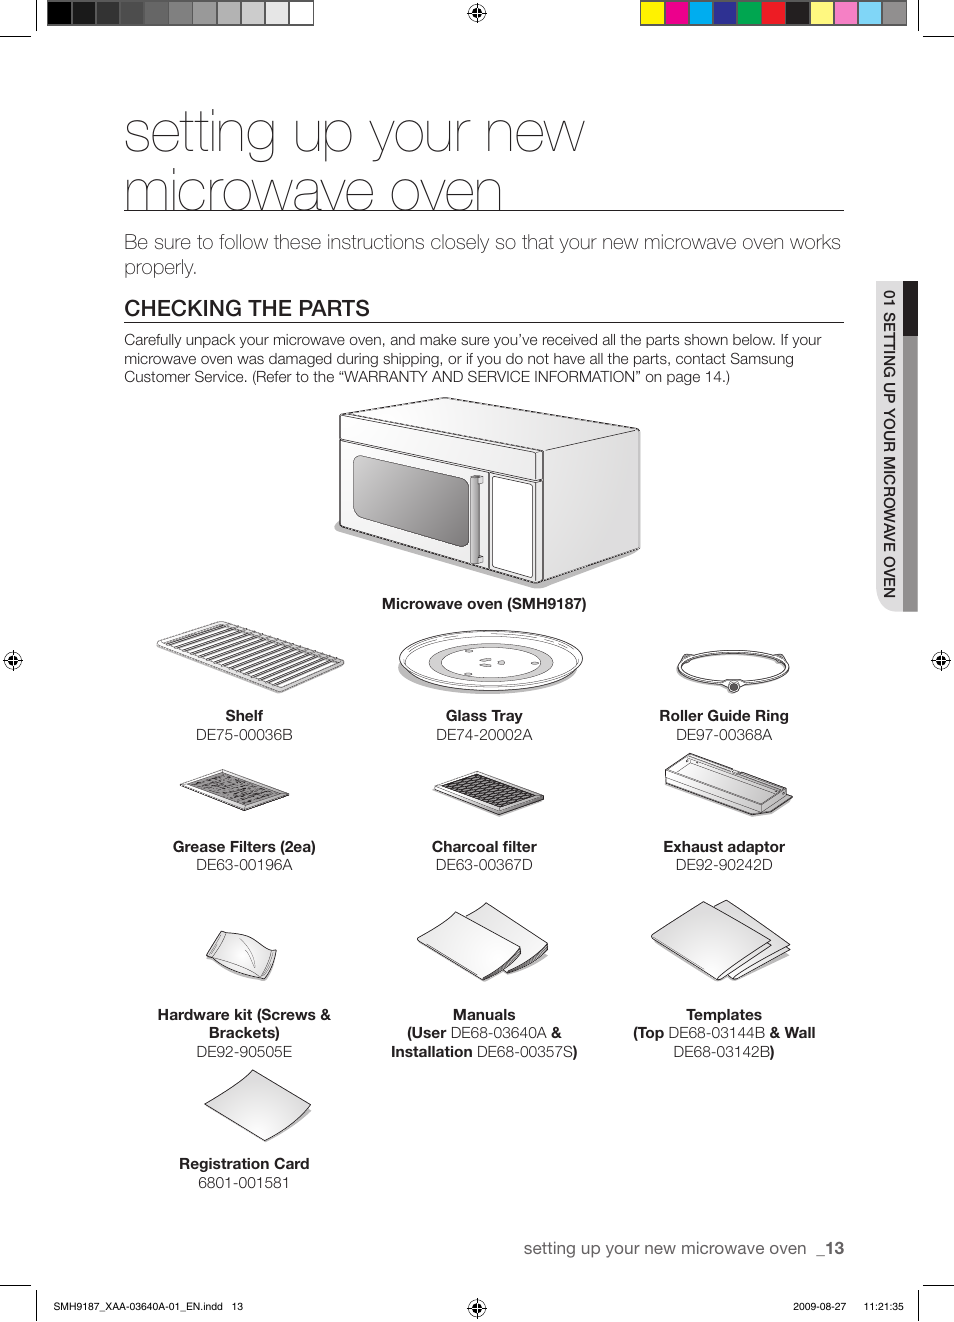 Setting Up Your New Microwave Oven